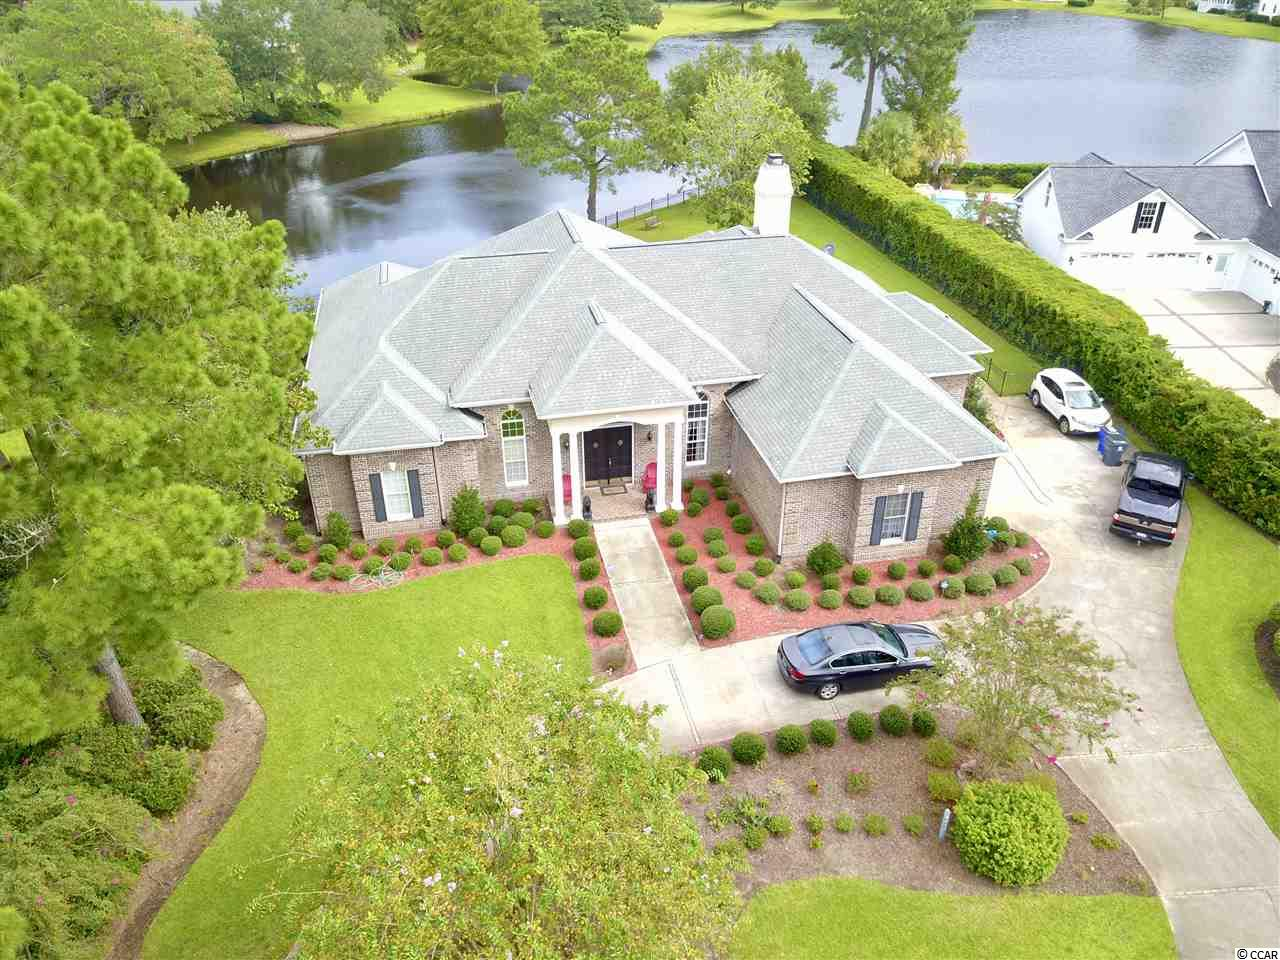 Welcome Home! 4415 Indigo Lane is an all brick single story custom built home with beautiful lake views located in the prestigious Richmond Hill section of Wachesaw Plantation. This wonderful home has been meticulous cared for and it shows. Custom details throughout this exceptional property make it truely unique. Wachesaw Plantation is located the heart of Murrells Inlet, is a 24 hour guard gated community with a Tom Fazio Private Golf Course and Tennis Club with swimming pool, a restaurant overlooking the river. Also convenient to area beaches, shopping, fine restaurants, Tidelands Community Hospital and everything The Grand Strand has to offer. Don't miss this opportunity. Schedule your showing today!